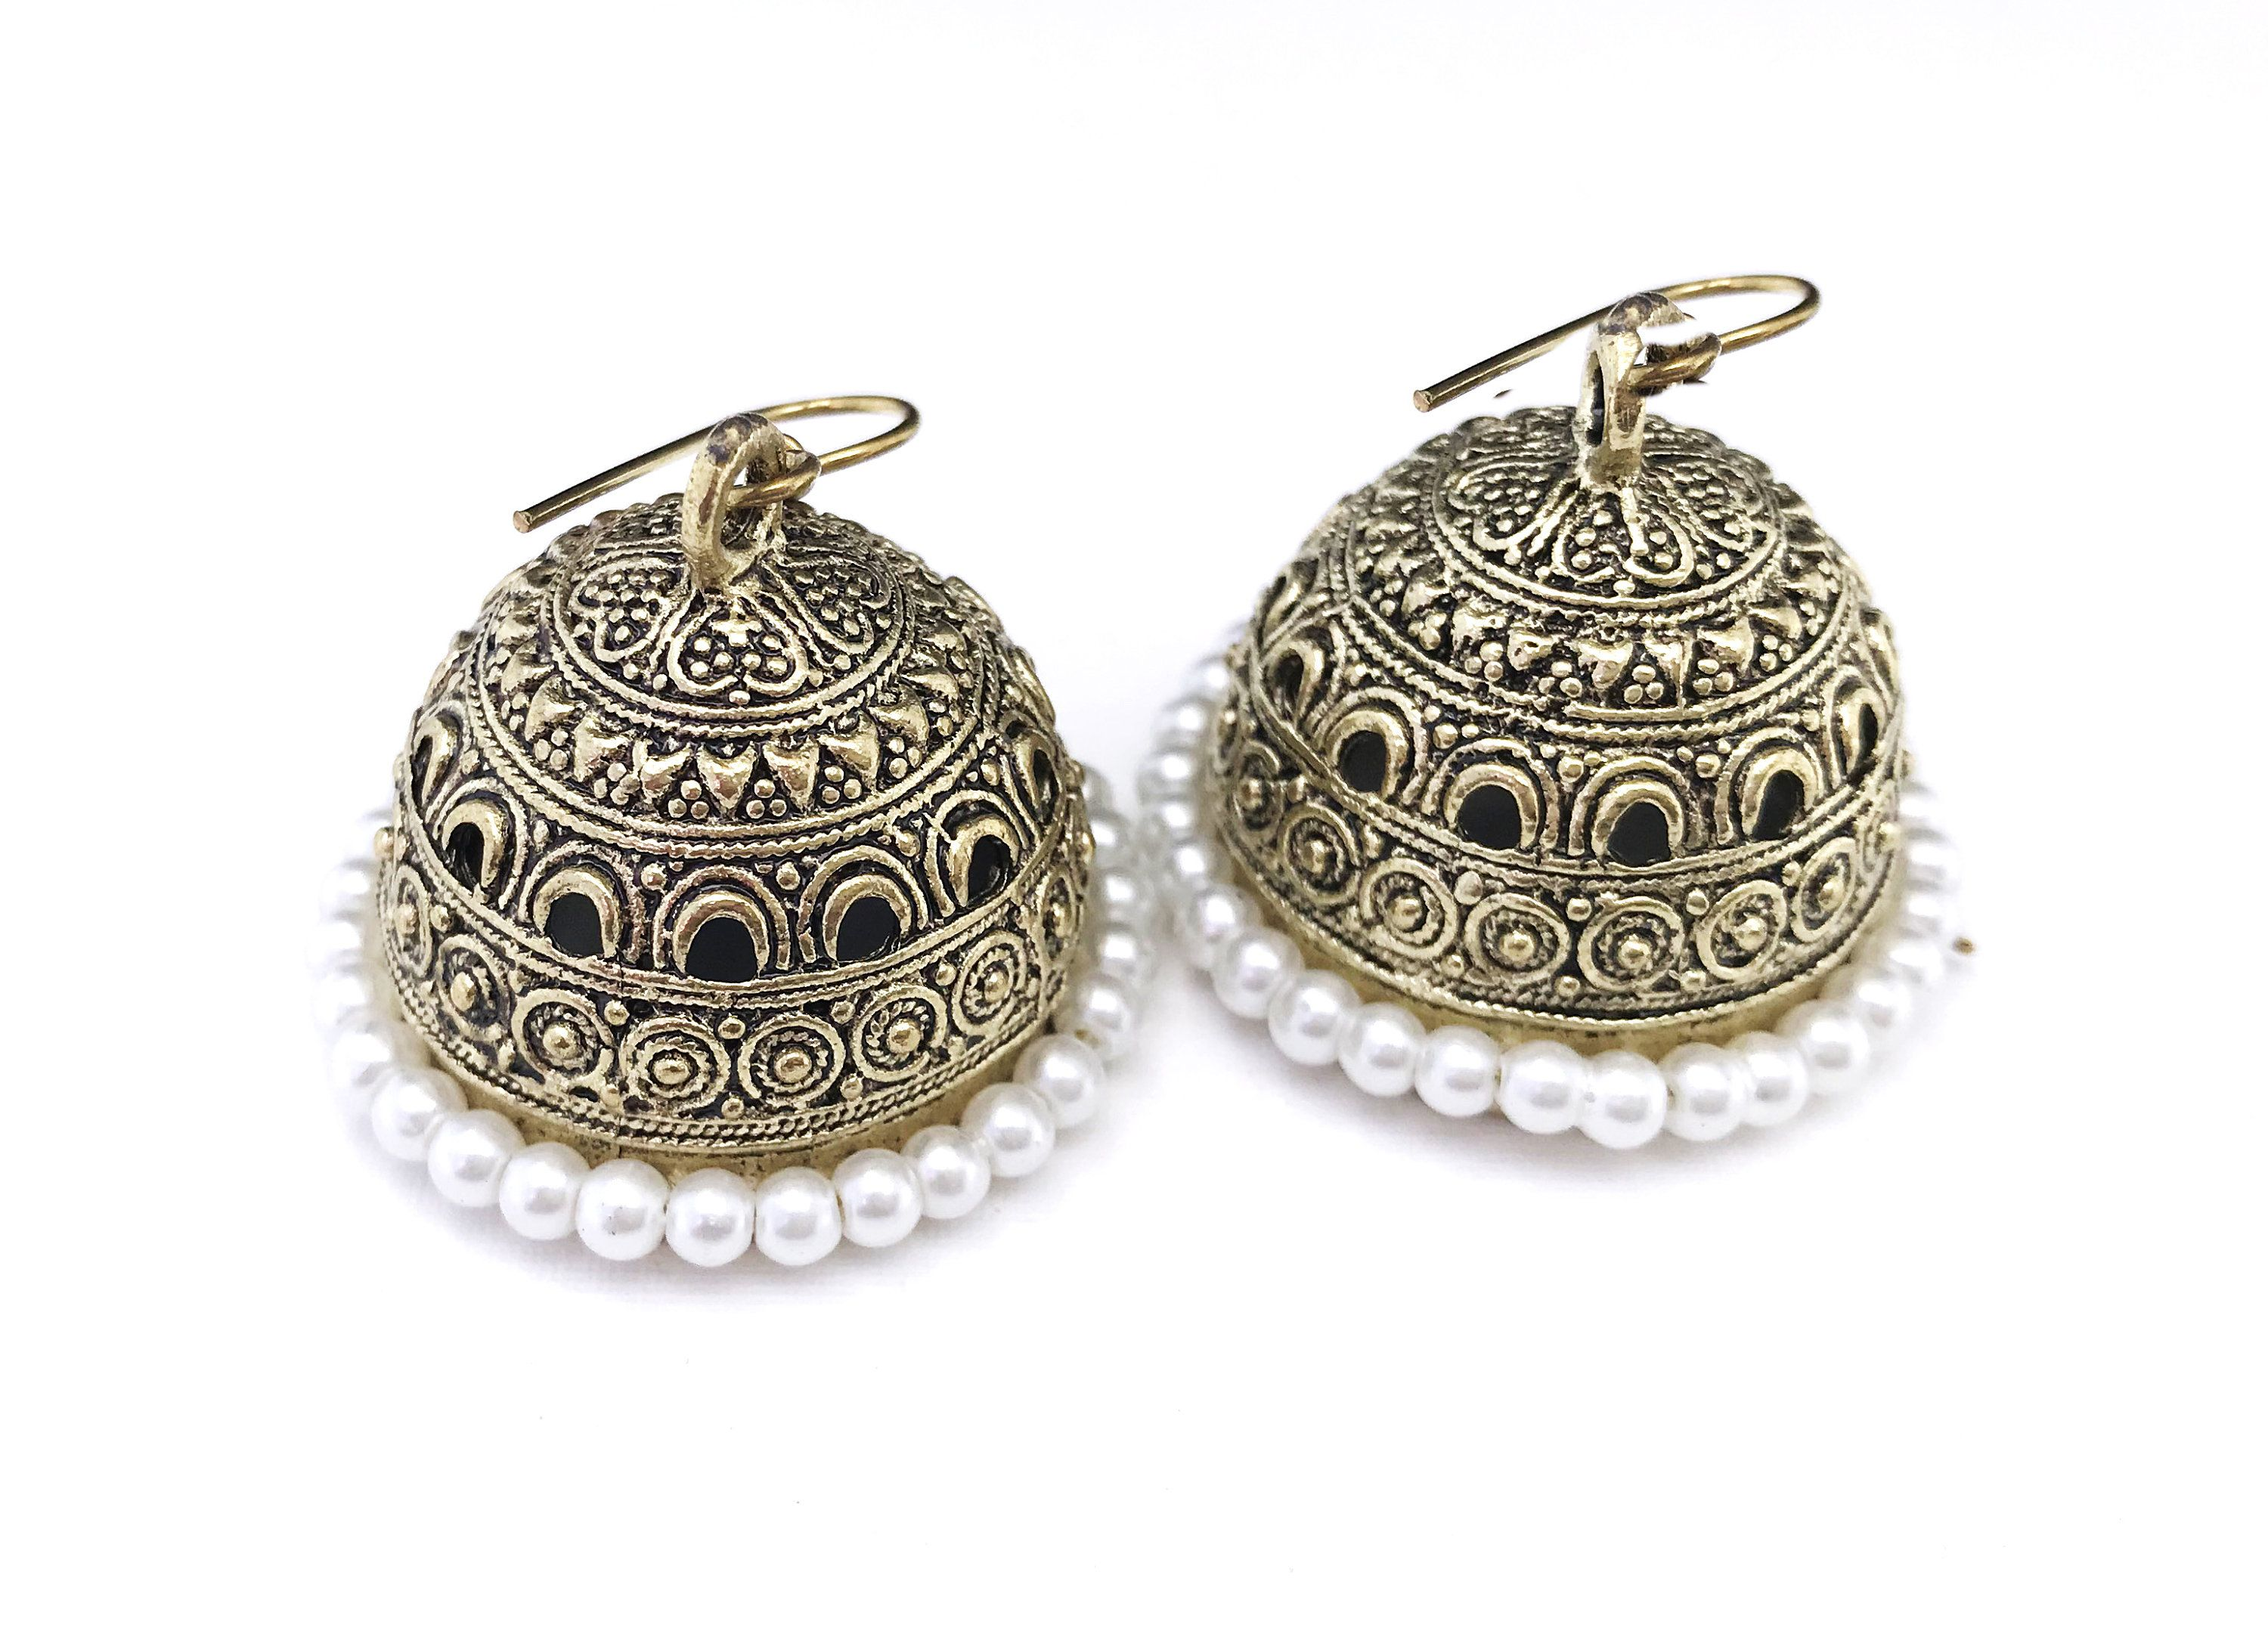 d72581b729e54 Bridal Pearl Earrings, Victorian Large Gold Jhumkas 18K Gold plated ...